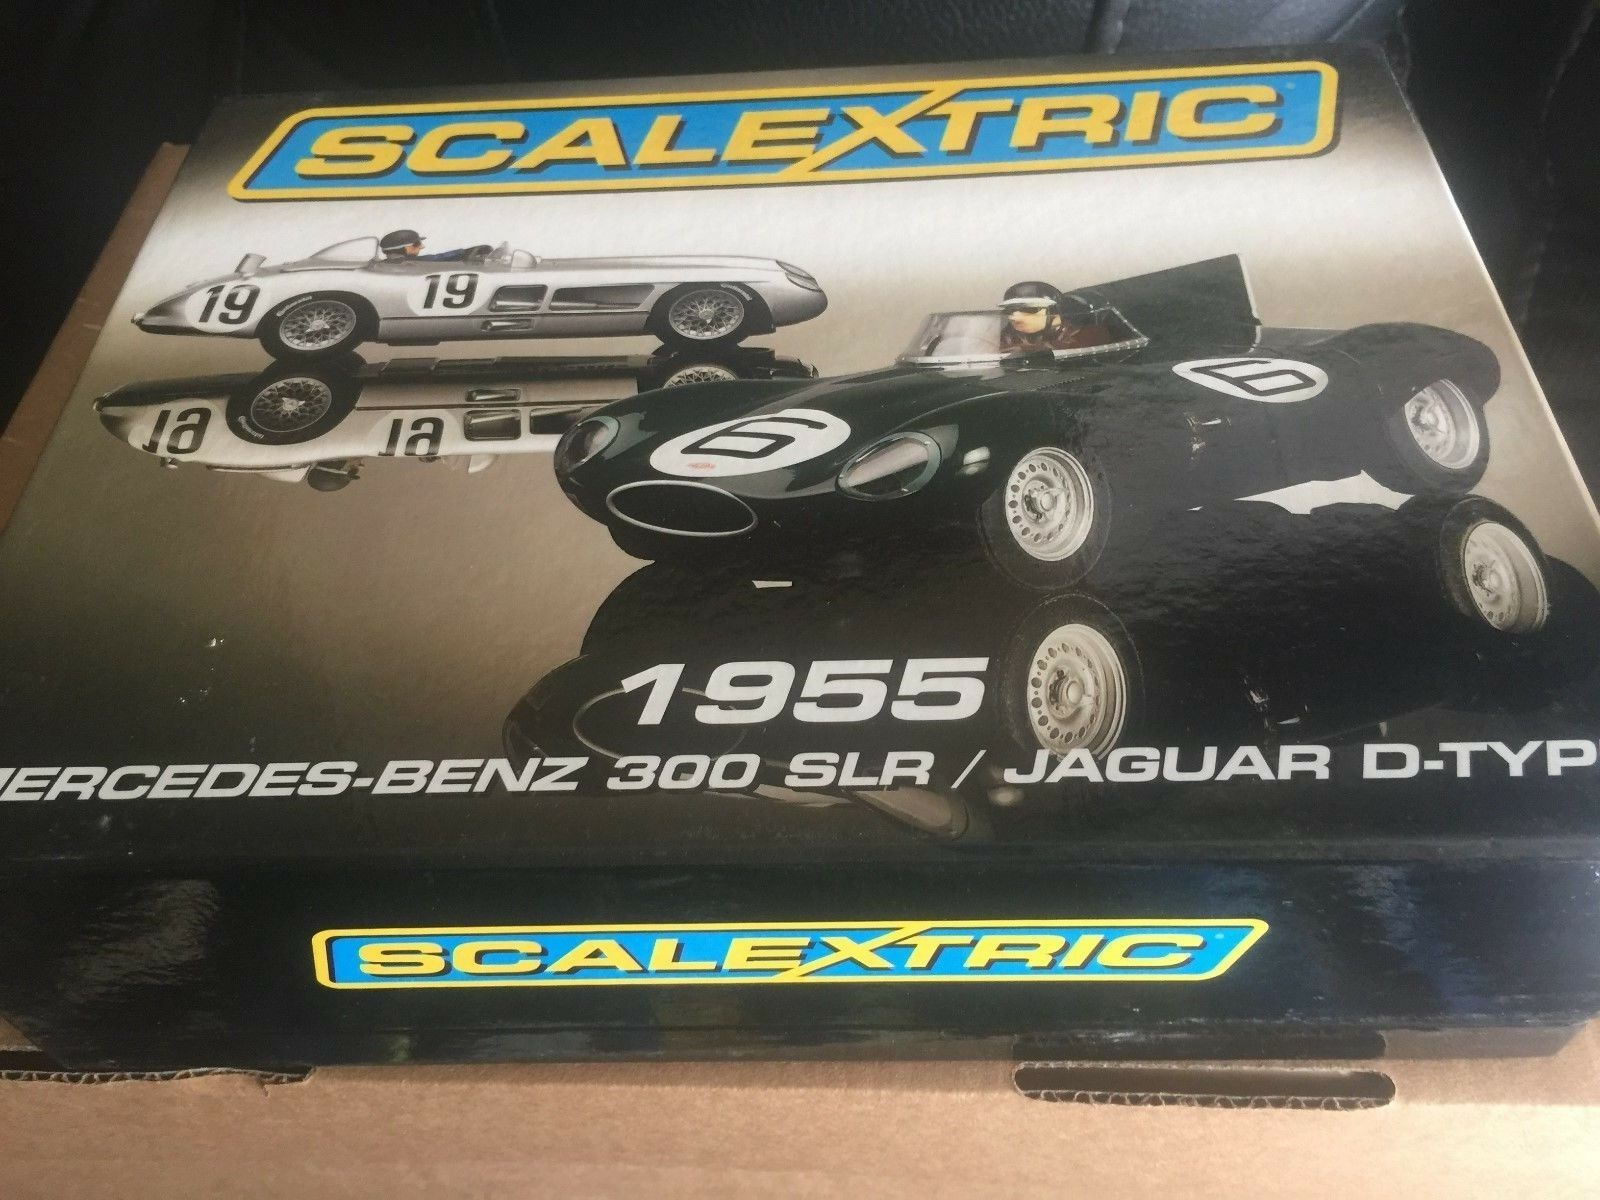 M b limited edition mercedes benz   jaguar d-type collectors set ref c3058a